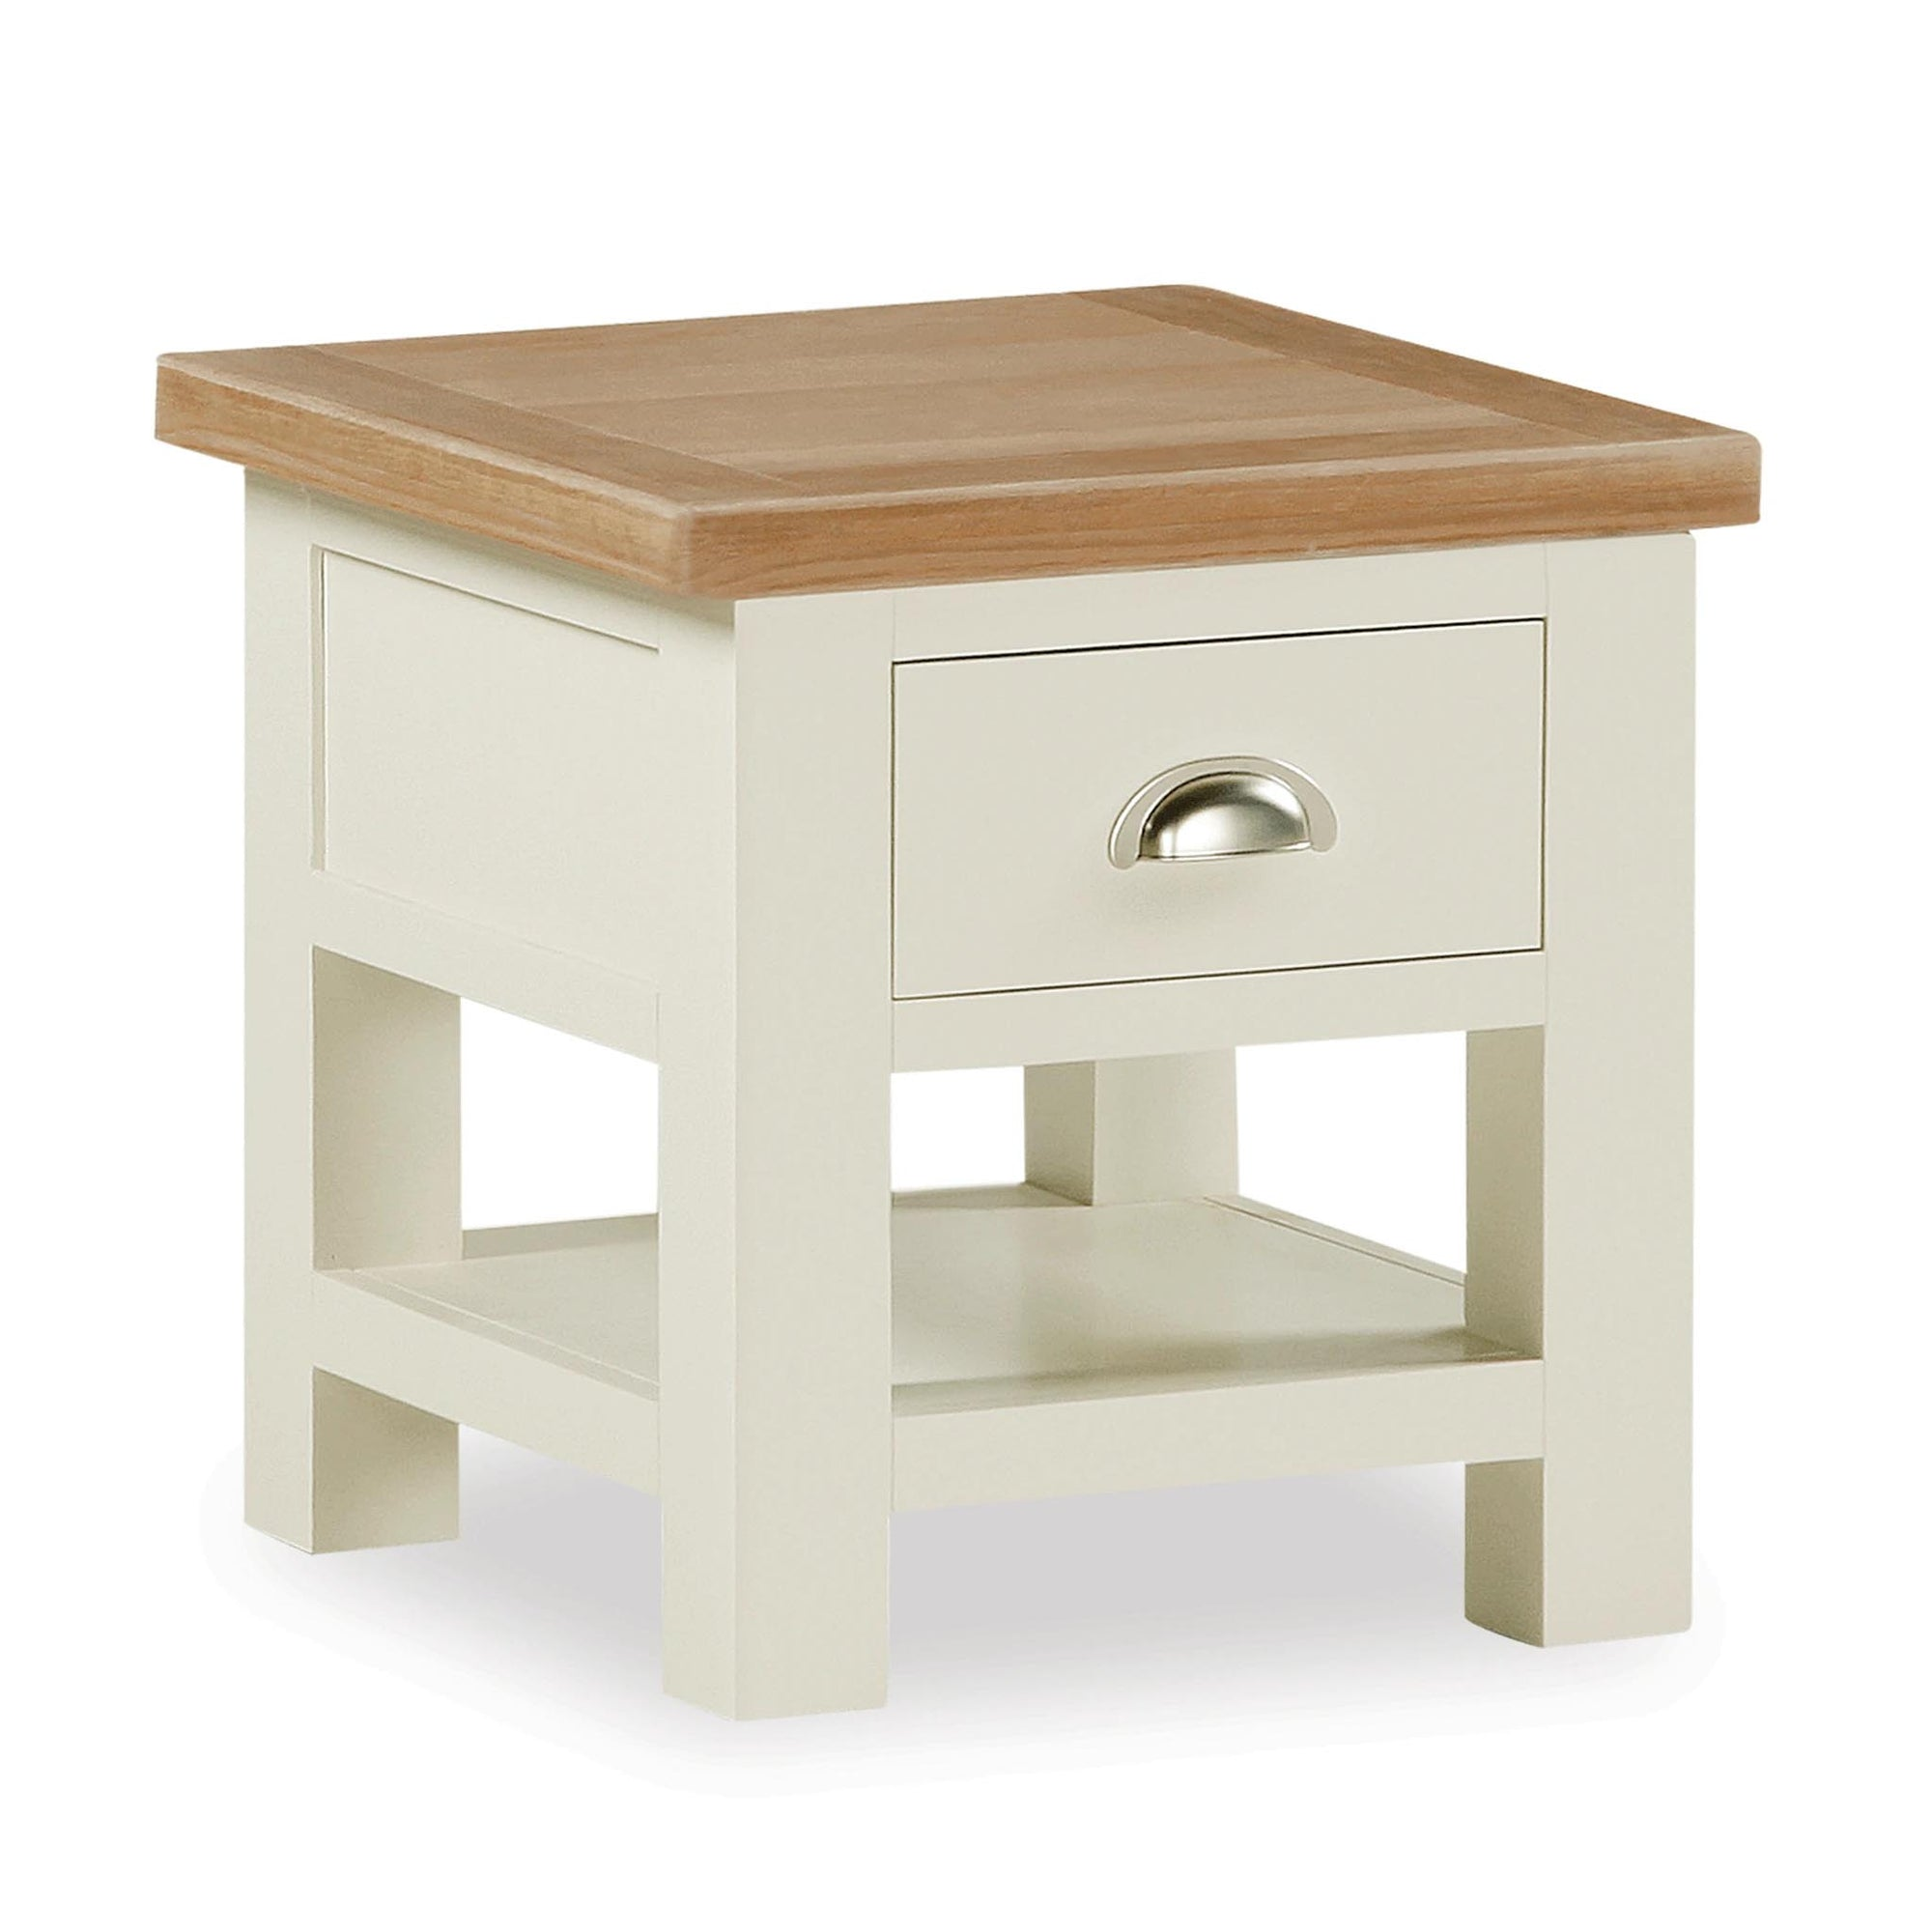 The Daymer Cream Painted Oak Side Lamp Table from Roseland Furniture